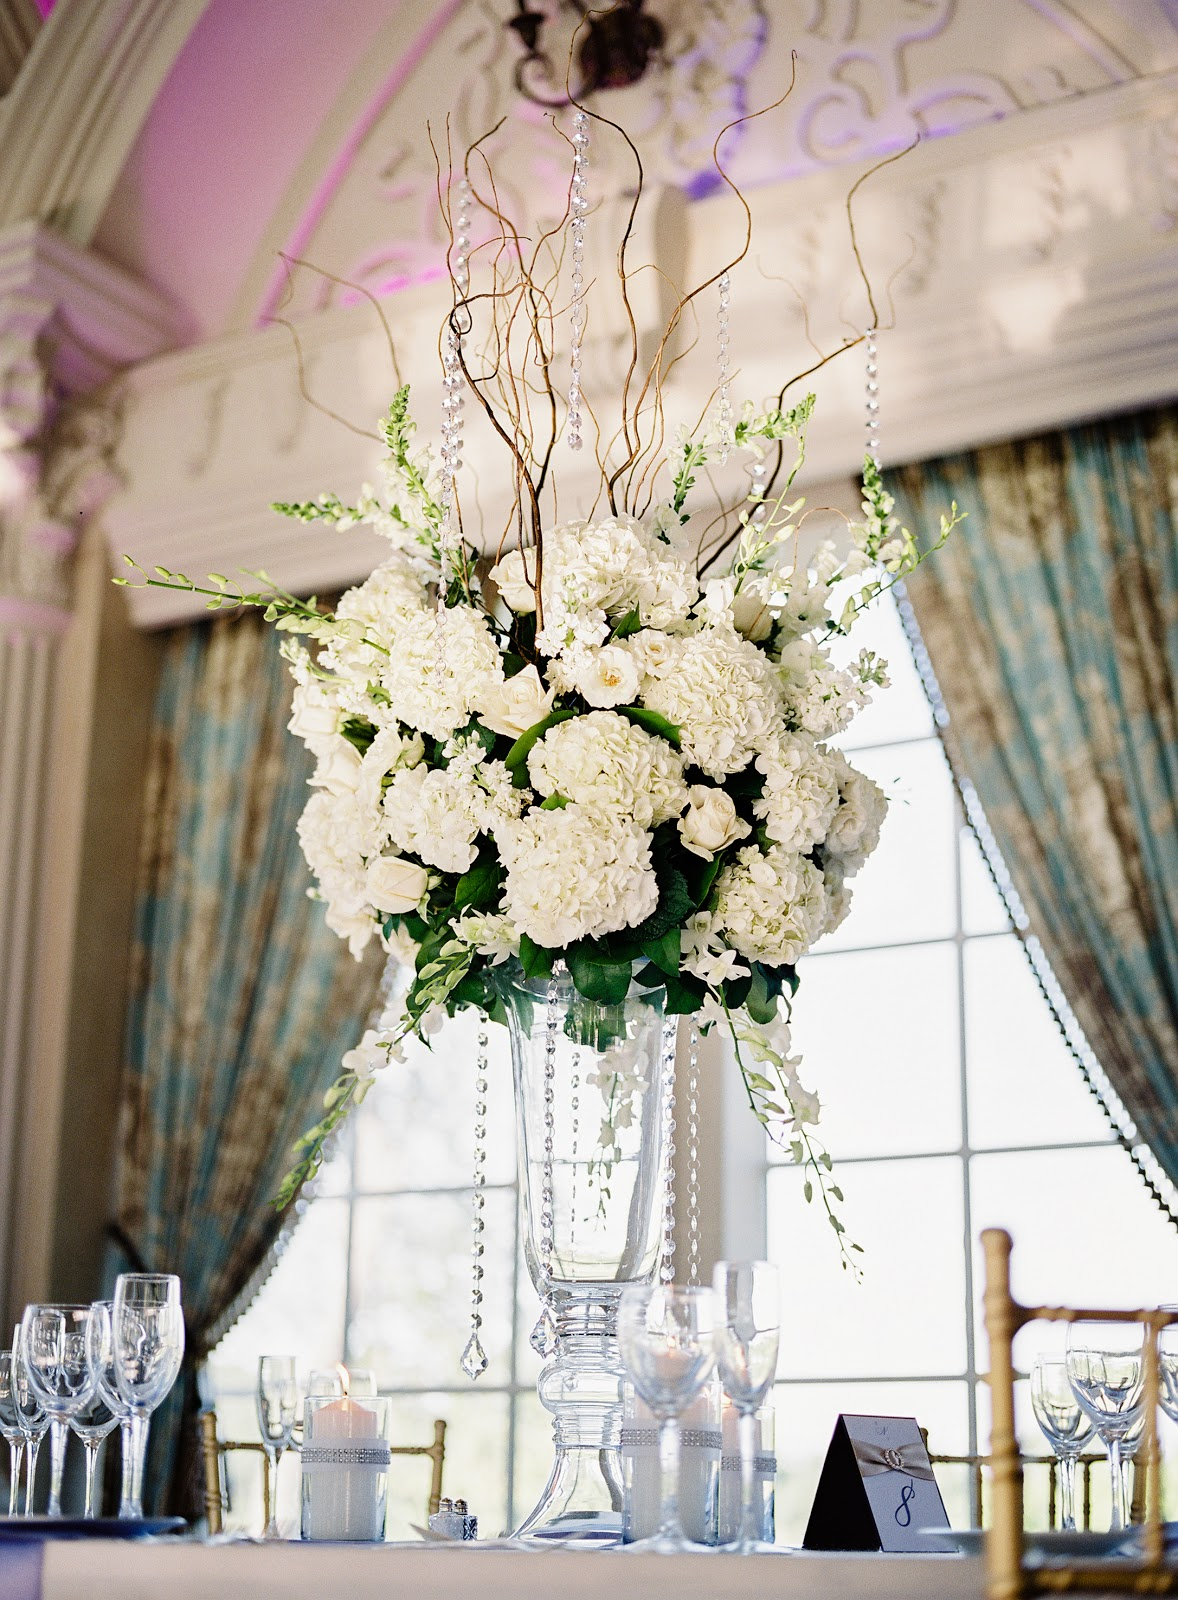 Rose Petals and Lace Floral Designers